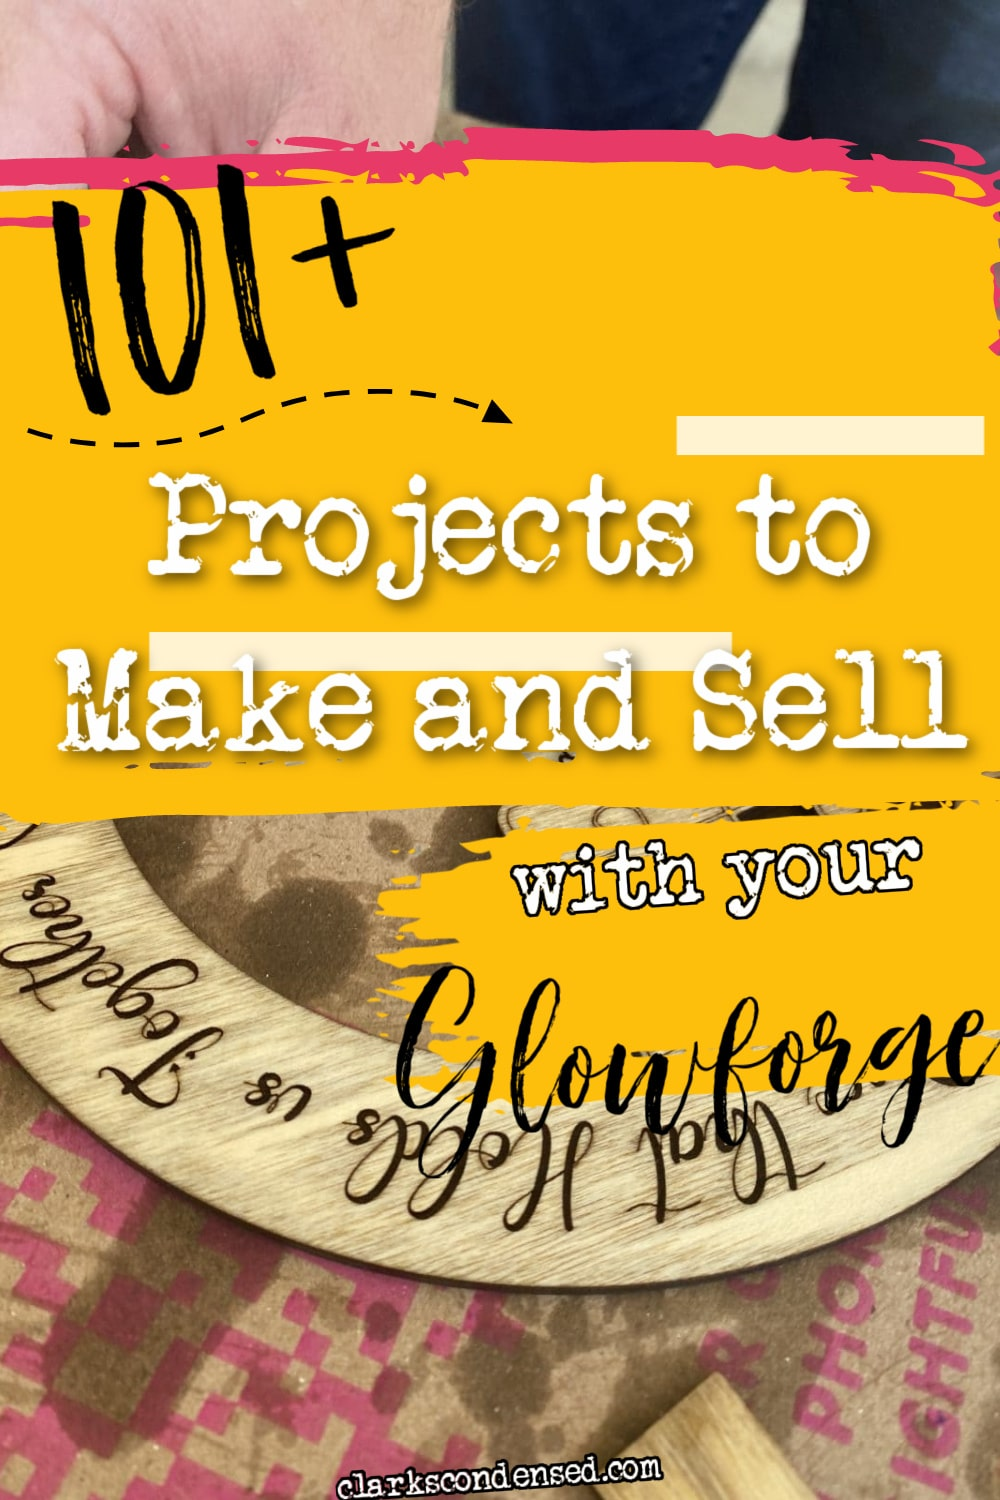 A Glowforge laser cutter has SO many options - but what Glowforge projects are the best to make? In this post, we share over 100 great ideas for Glowforge projects that you can make and sell for your small business. WE've included links to digital files that you can buy or use for your own inspiration. This post is a must-read for all Glowforge Owners! via @clarkscondensed